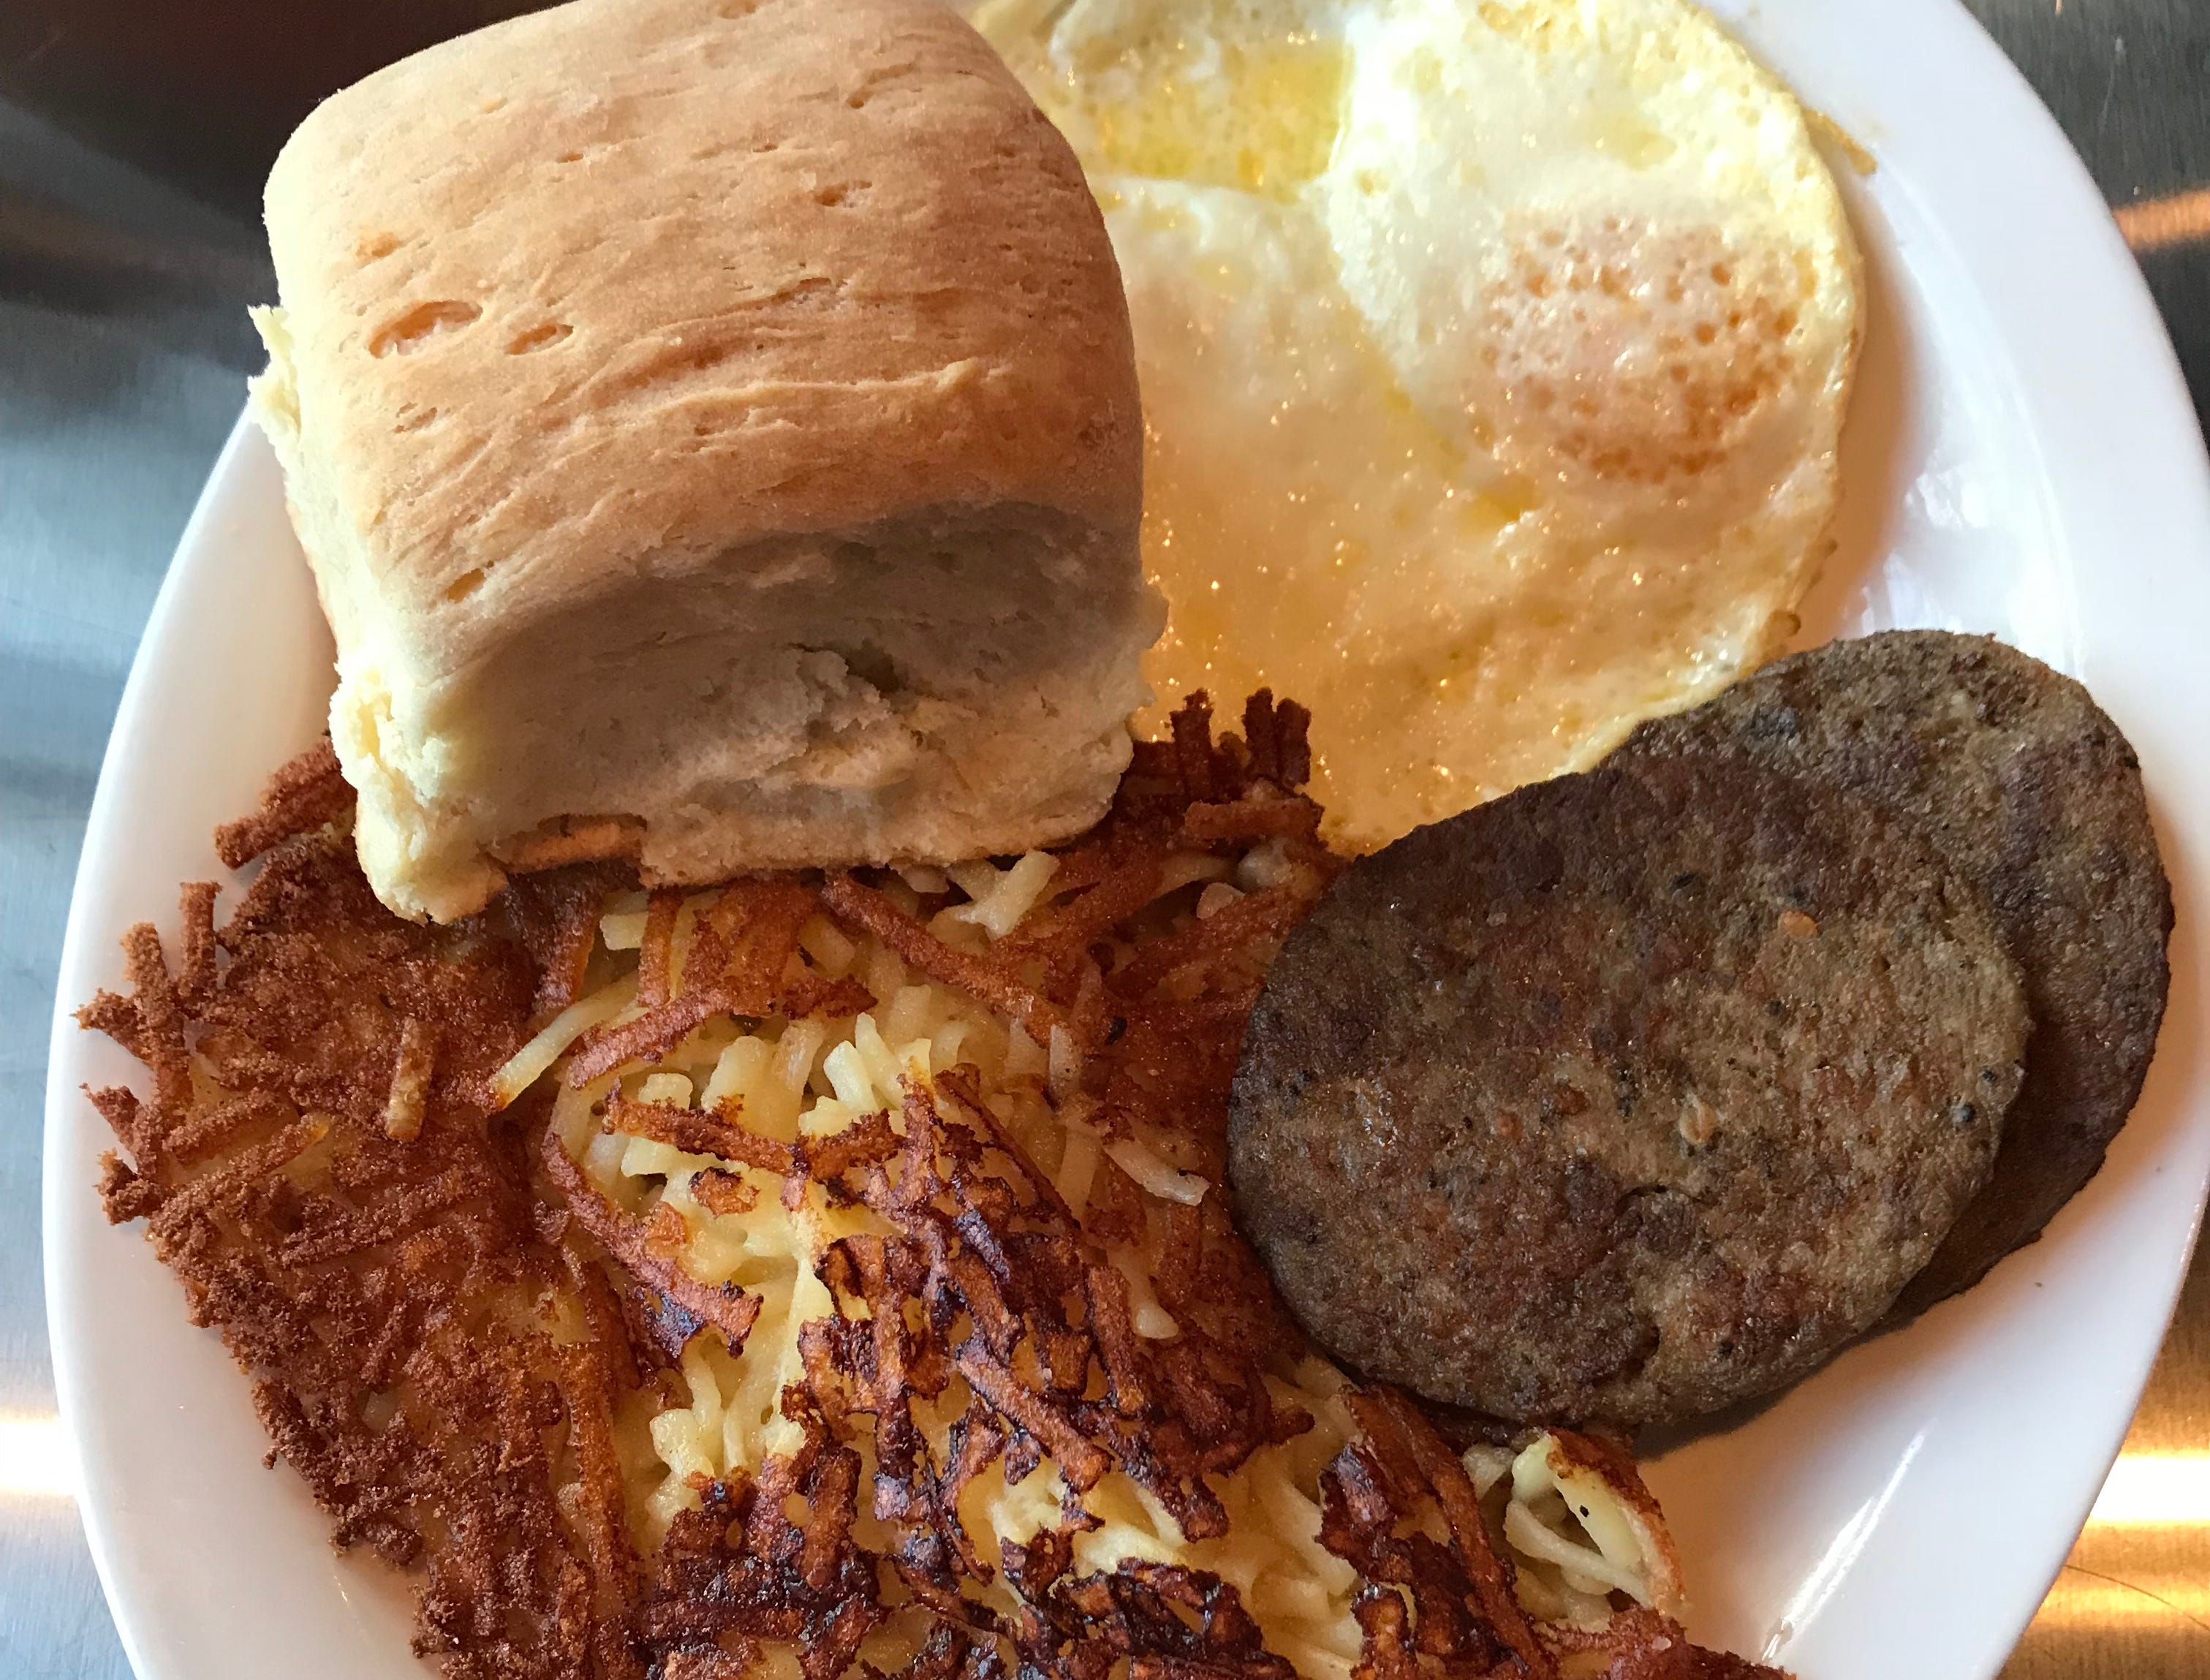 The Sun Up is one of the most popular items on the menu at Fill-Up with Billups in Madison.